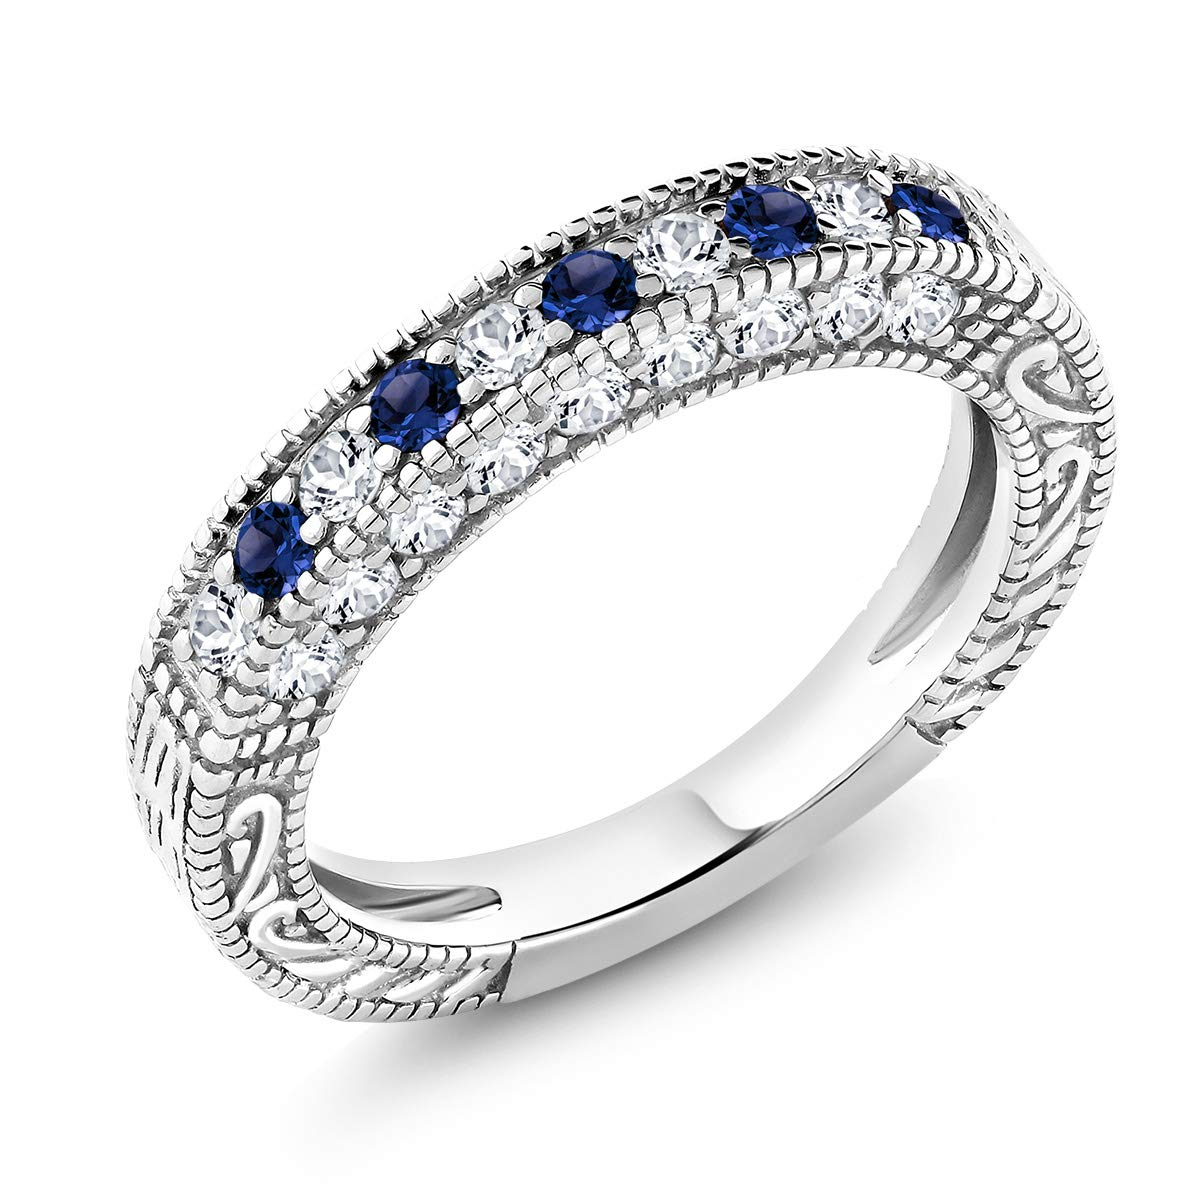 Gem Stone King 1.00 Ct Blue and White Created Sapphire 925 Sterling Silver Wedding Band Ring (Size 7) by Gem Stone King